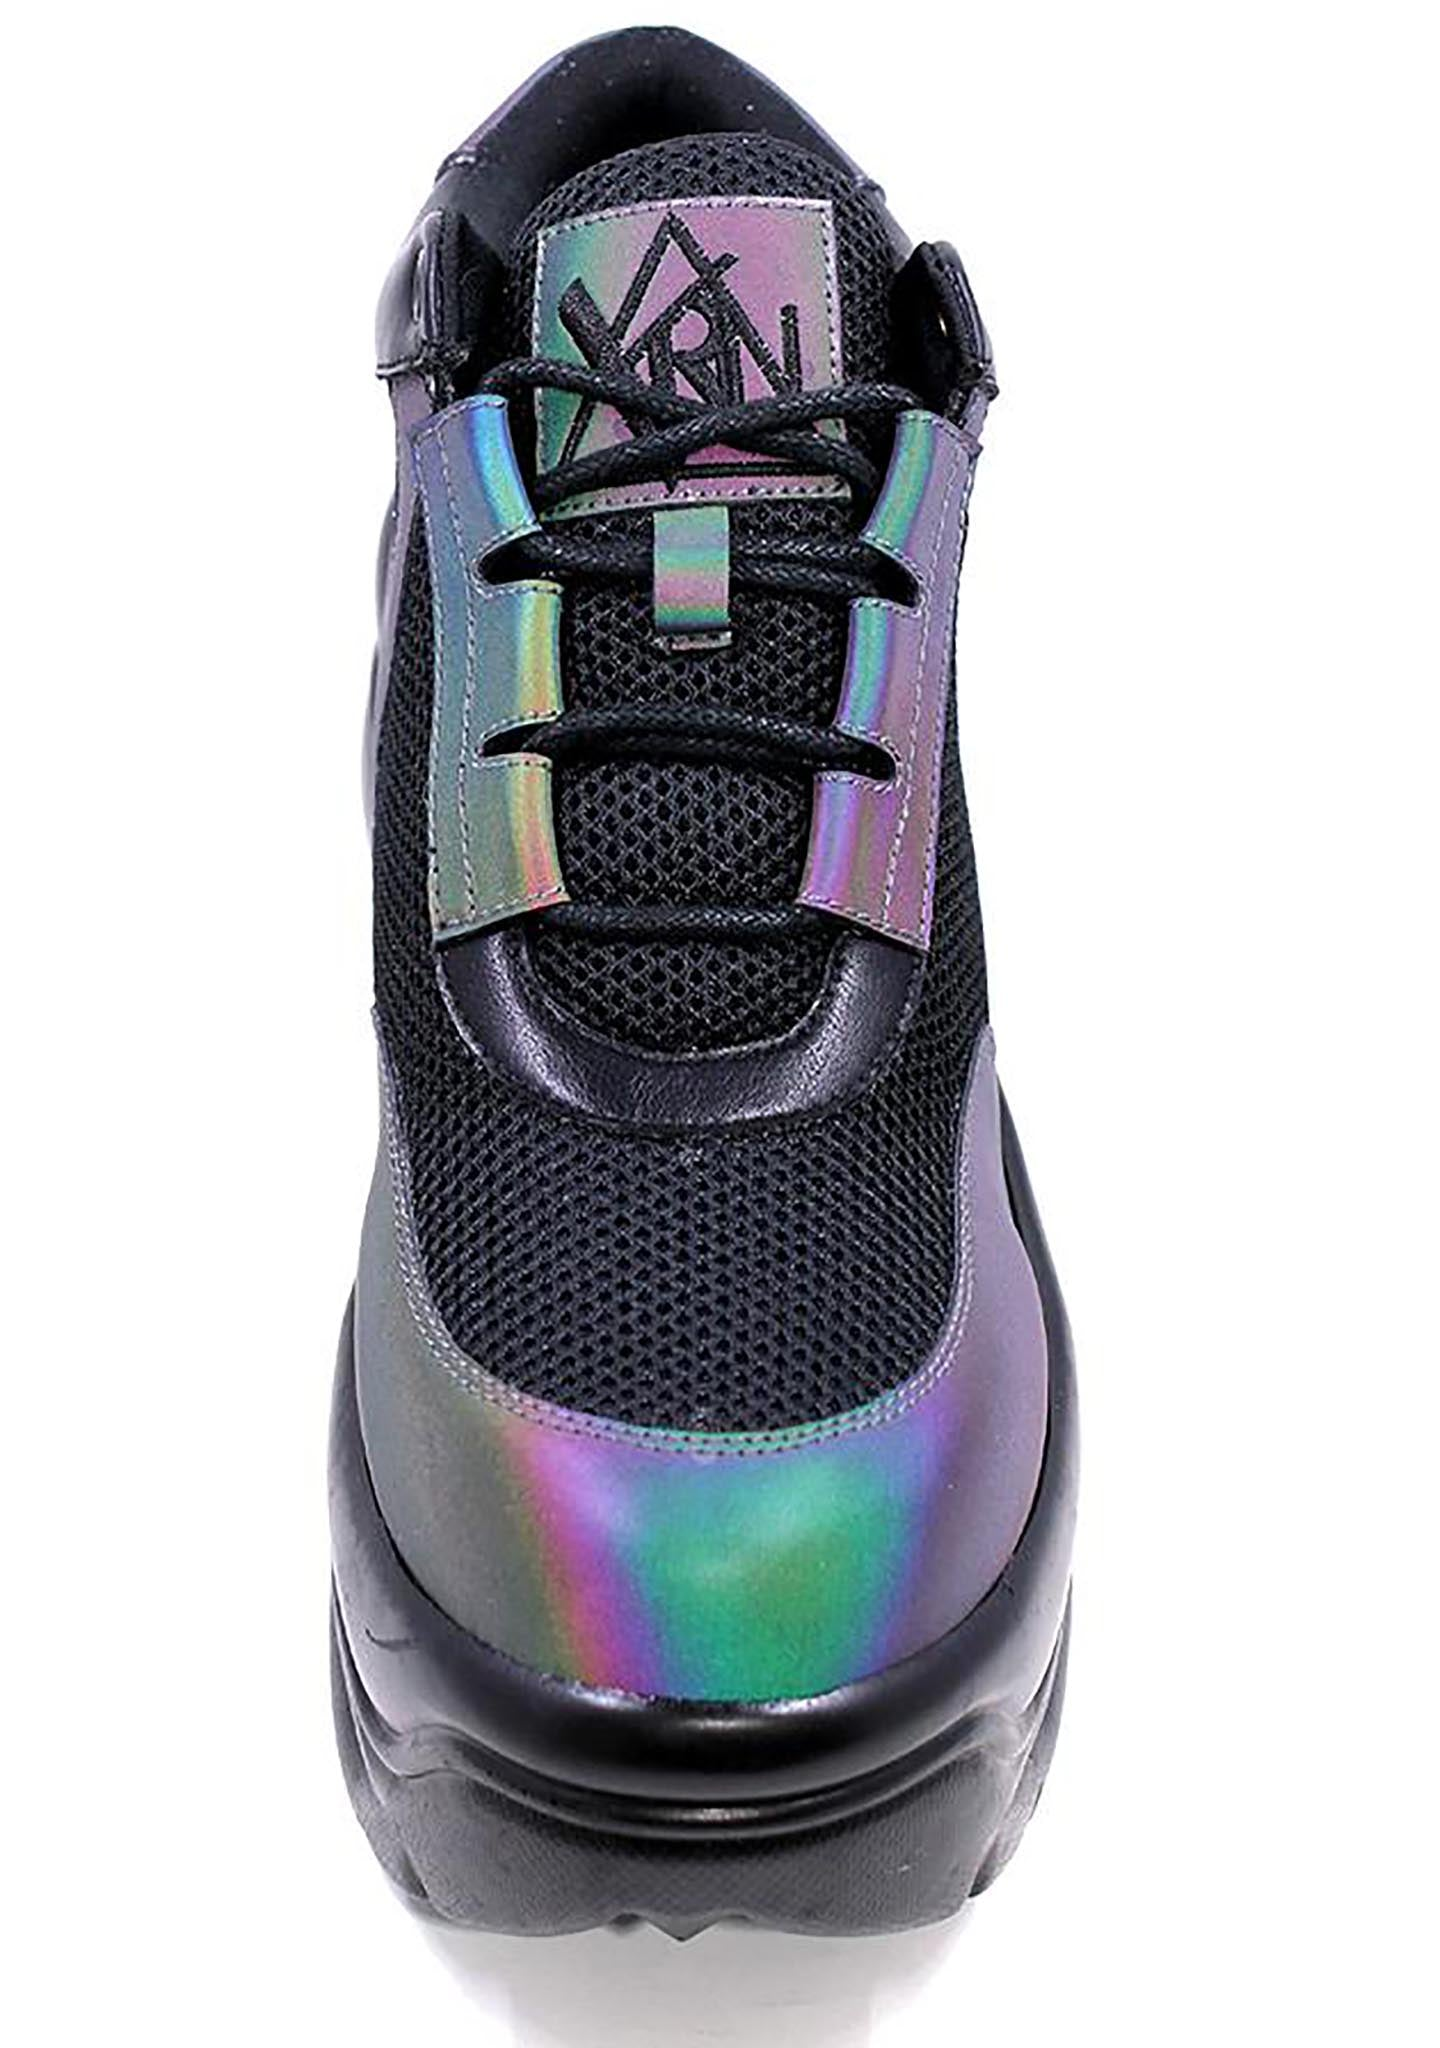 Matrixx Sneakers in Reflective Black